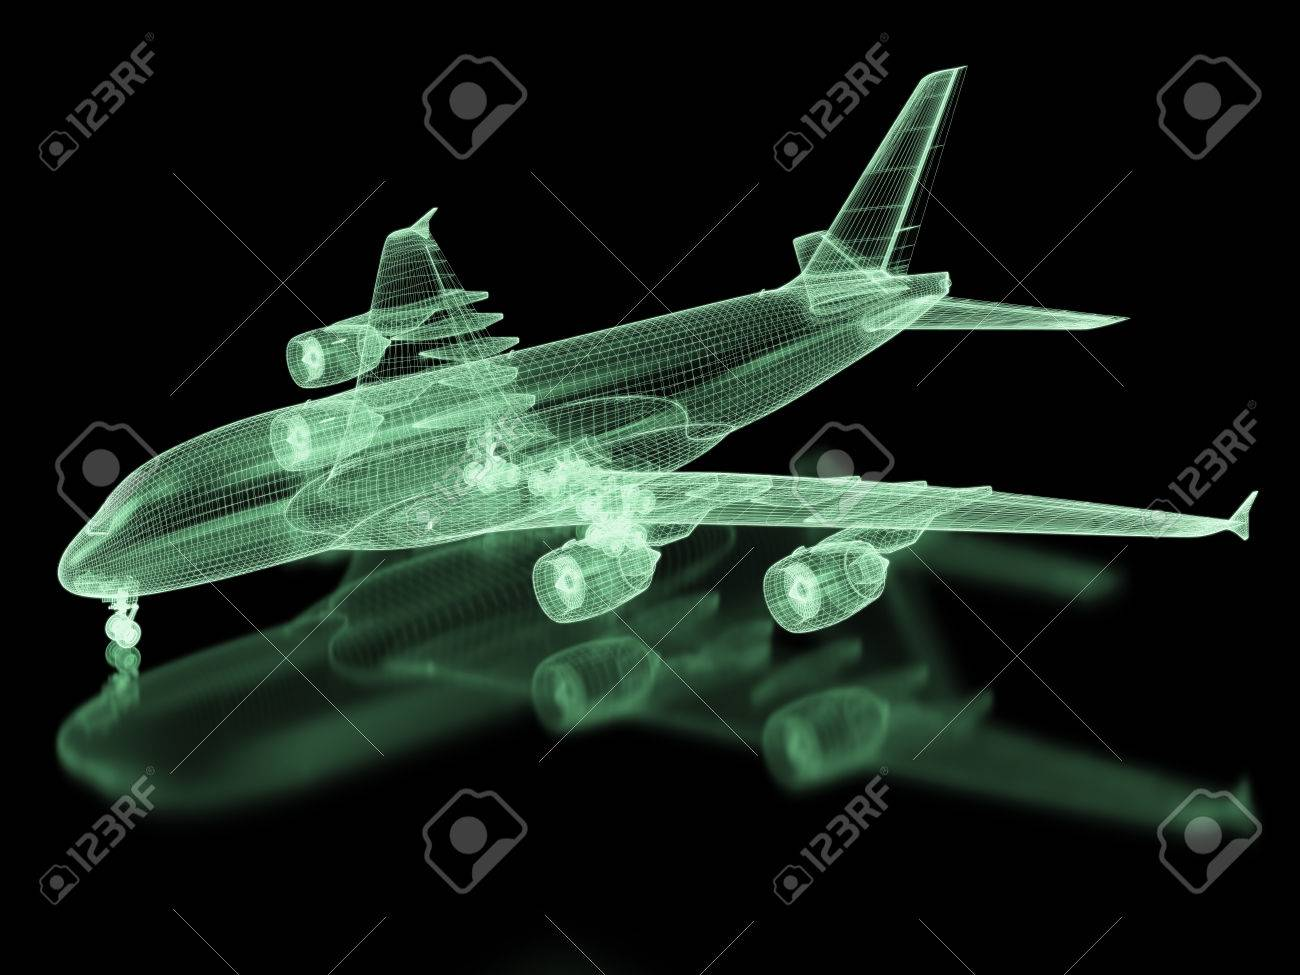 Commercial Aircraft Mesh Part Of A Series Stock Photo